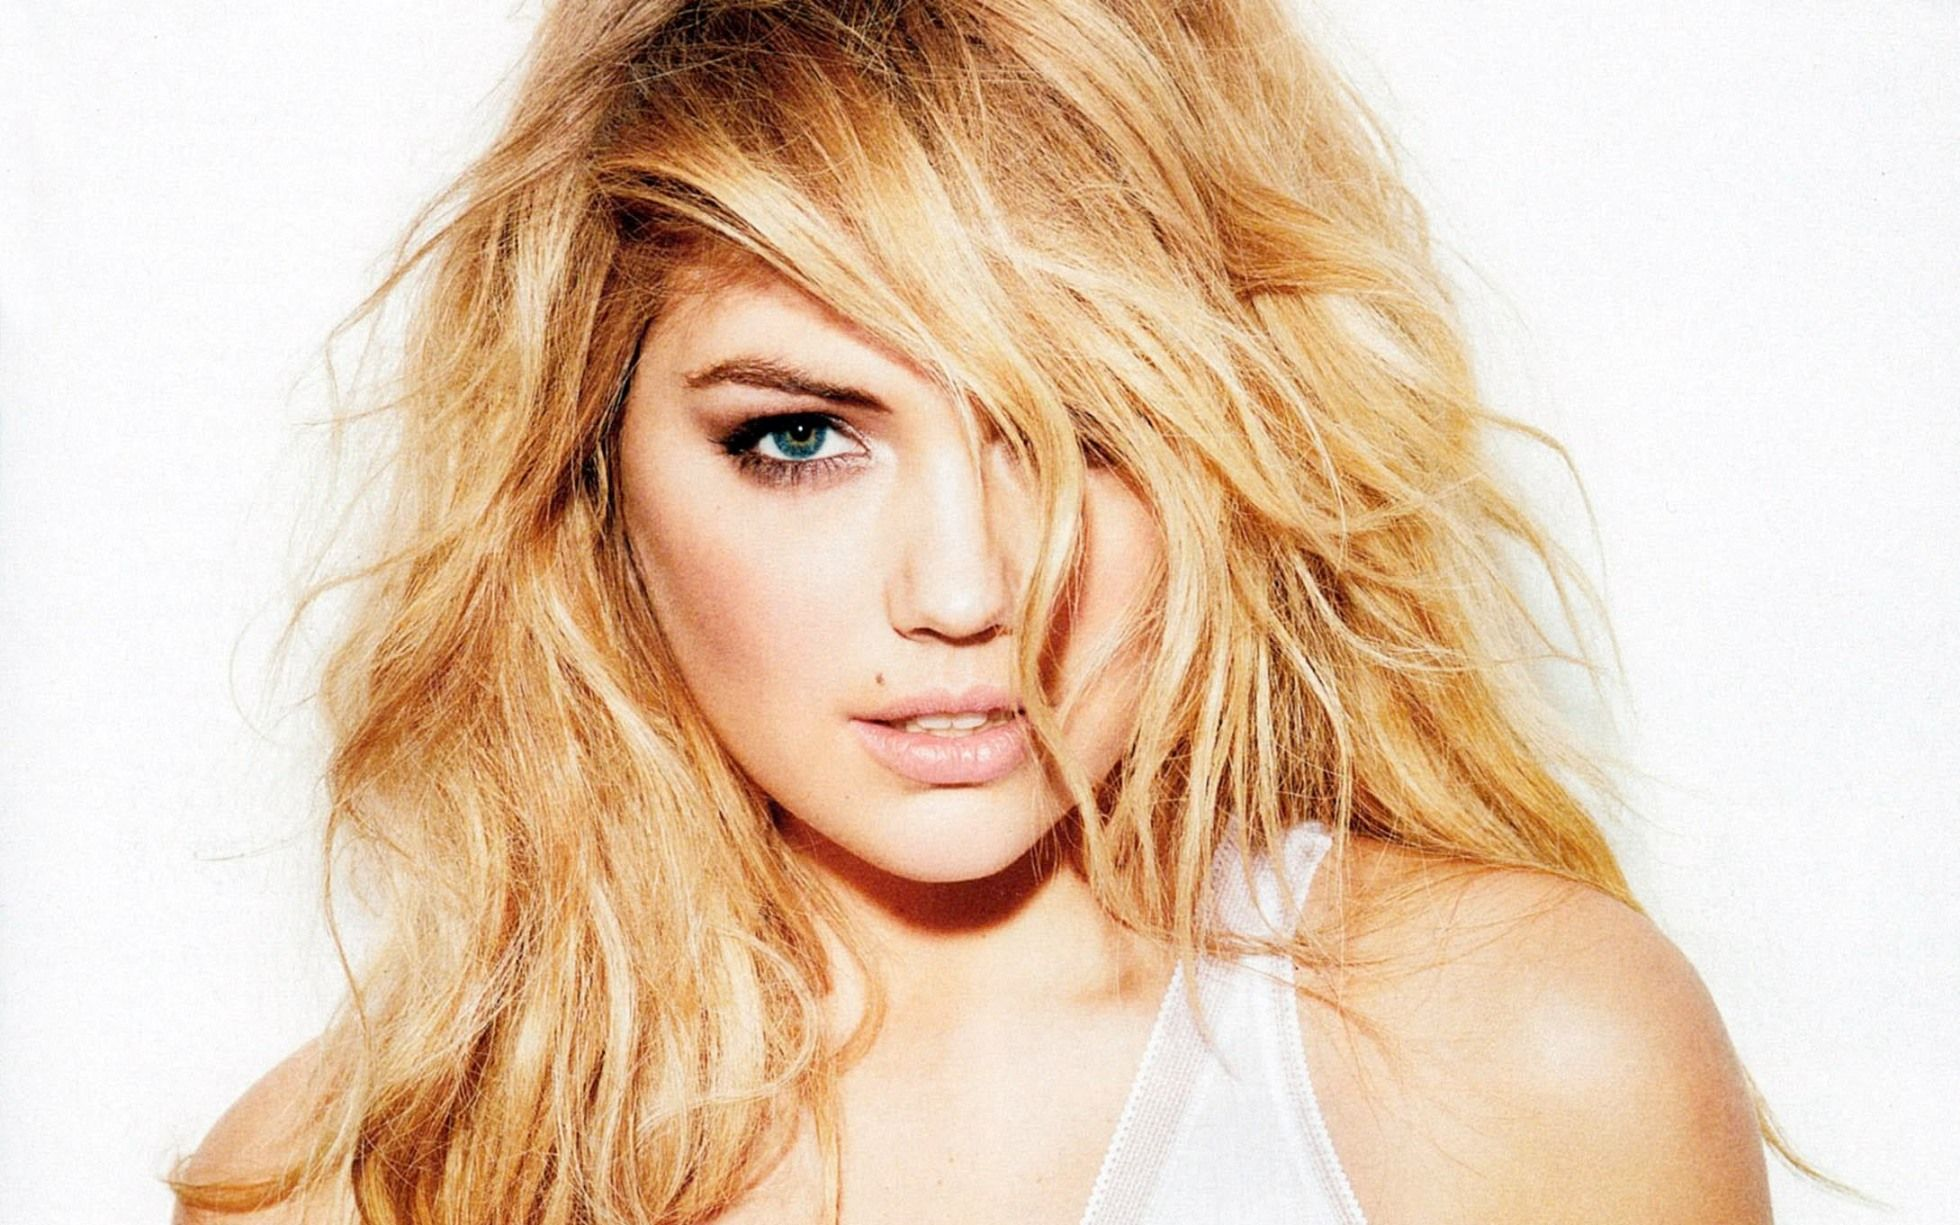 Kate Upton Hd Wallpapers Movie Hd Wallpapers